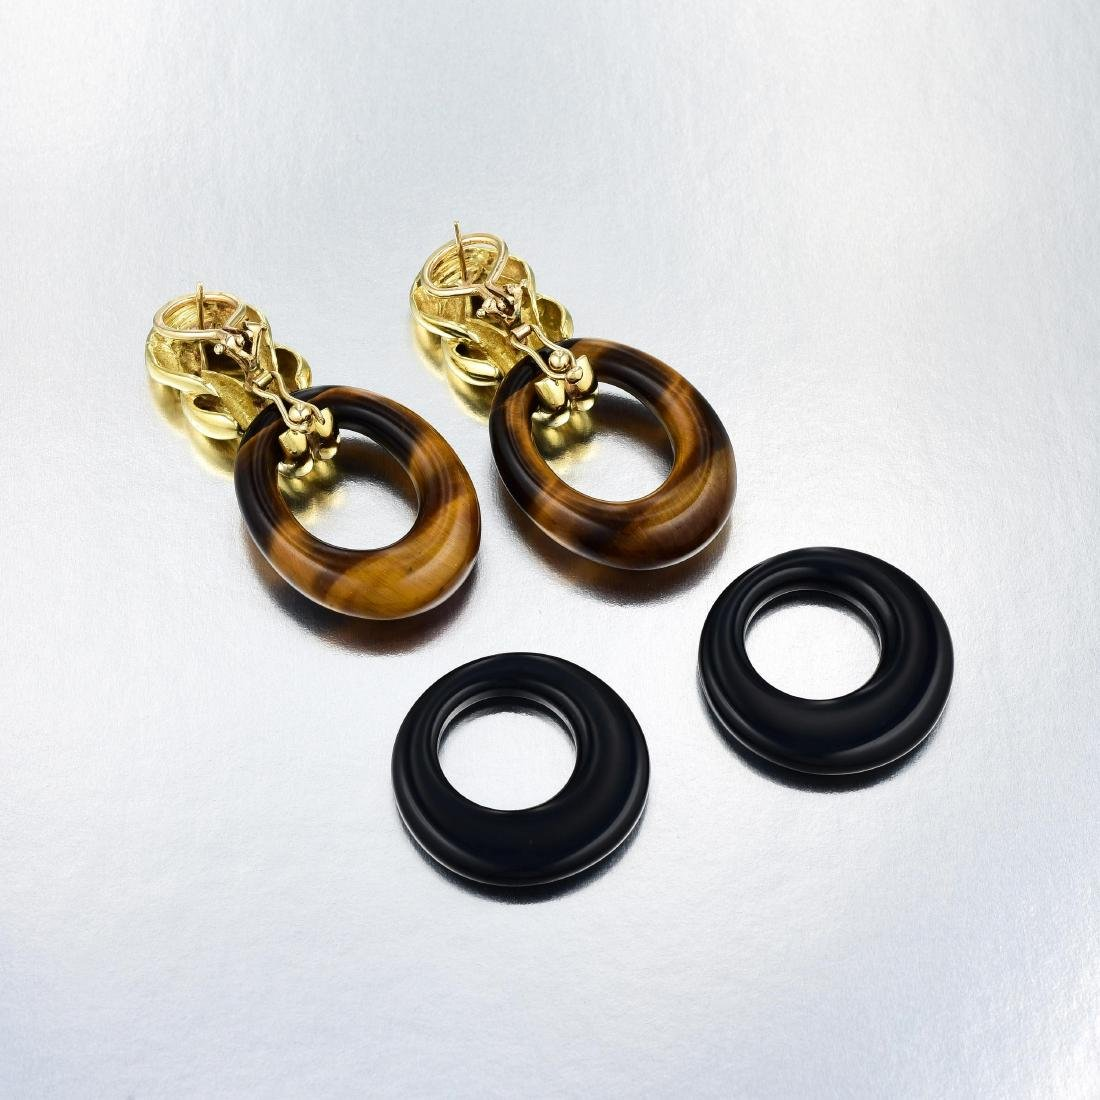 A Pair of 18K Gold Earrings with Detachable Hoops - 2